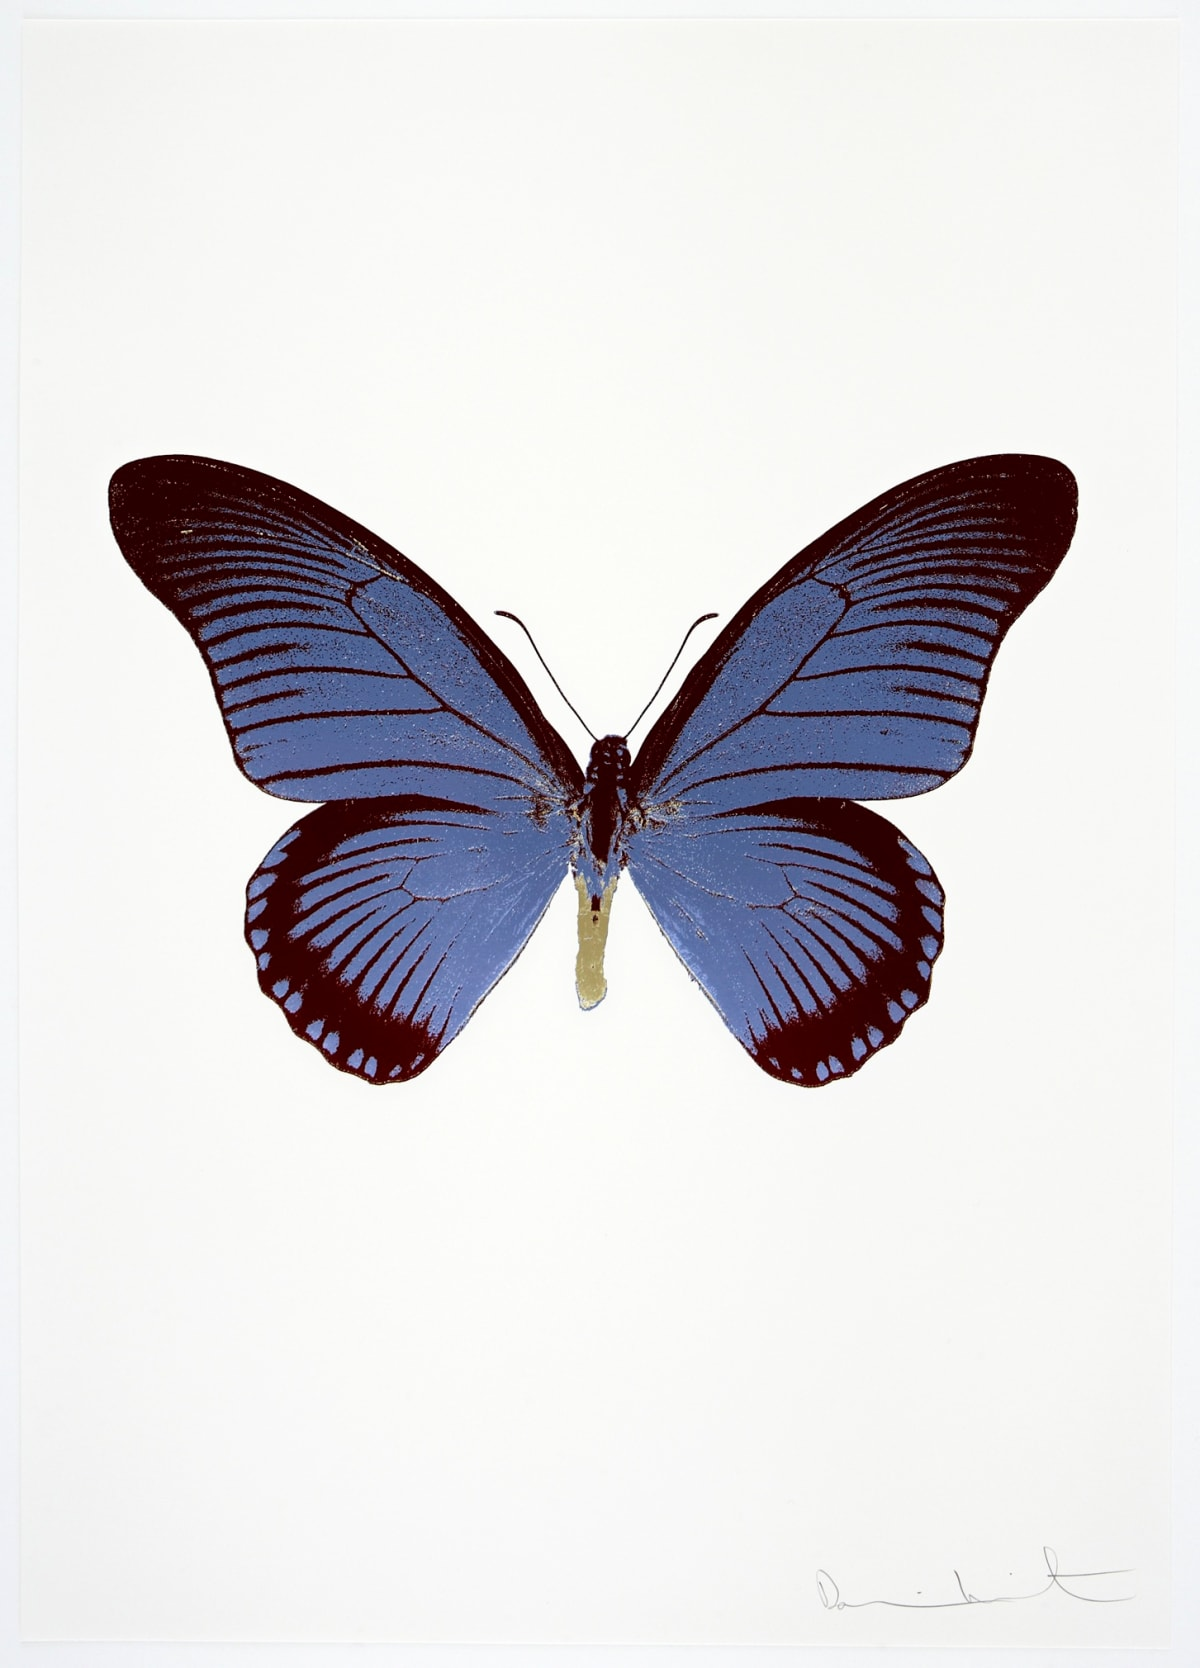 Damien Hirst The Souls IV - Cornflower Blue/Burgundy/Cool Gold, 2010 3 colour foil block on 300gsm Arches 88 archival paper. Signed and numbered. Published by Paul Stolper and Other Criteria 72 x 51cm OC8019 / 1418-42 Edition of 15